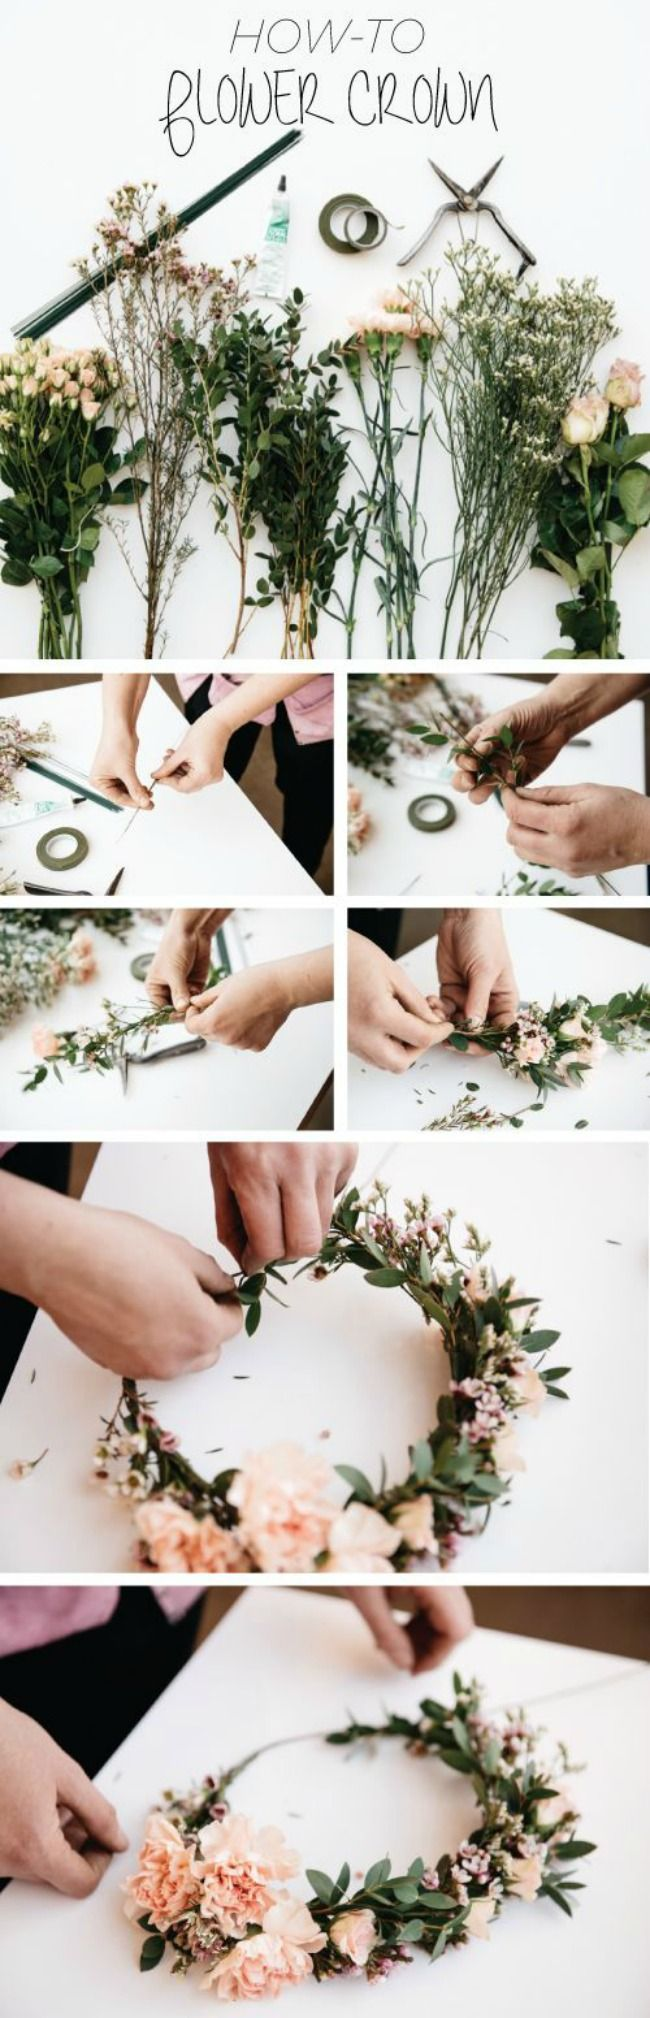 From half moon flower crowns to flower headbands here are The 11 Best DIY Flower Crowns we know you'll love.